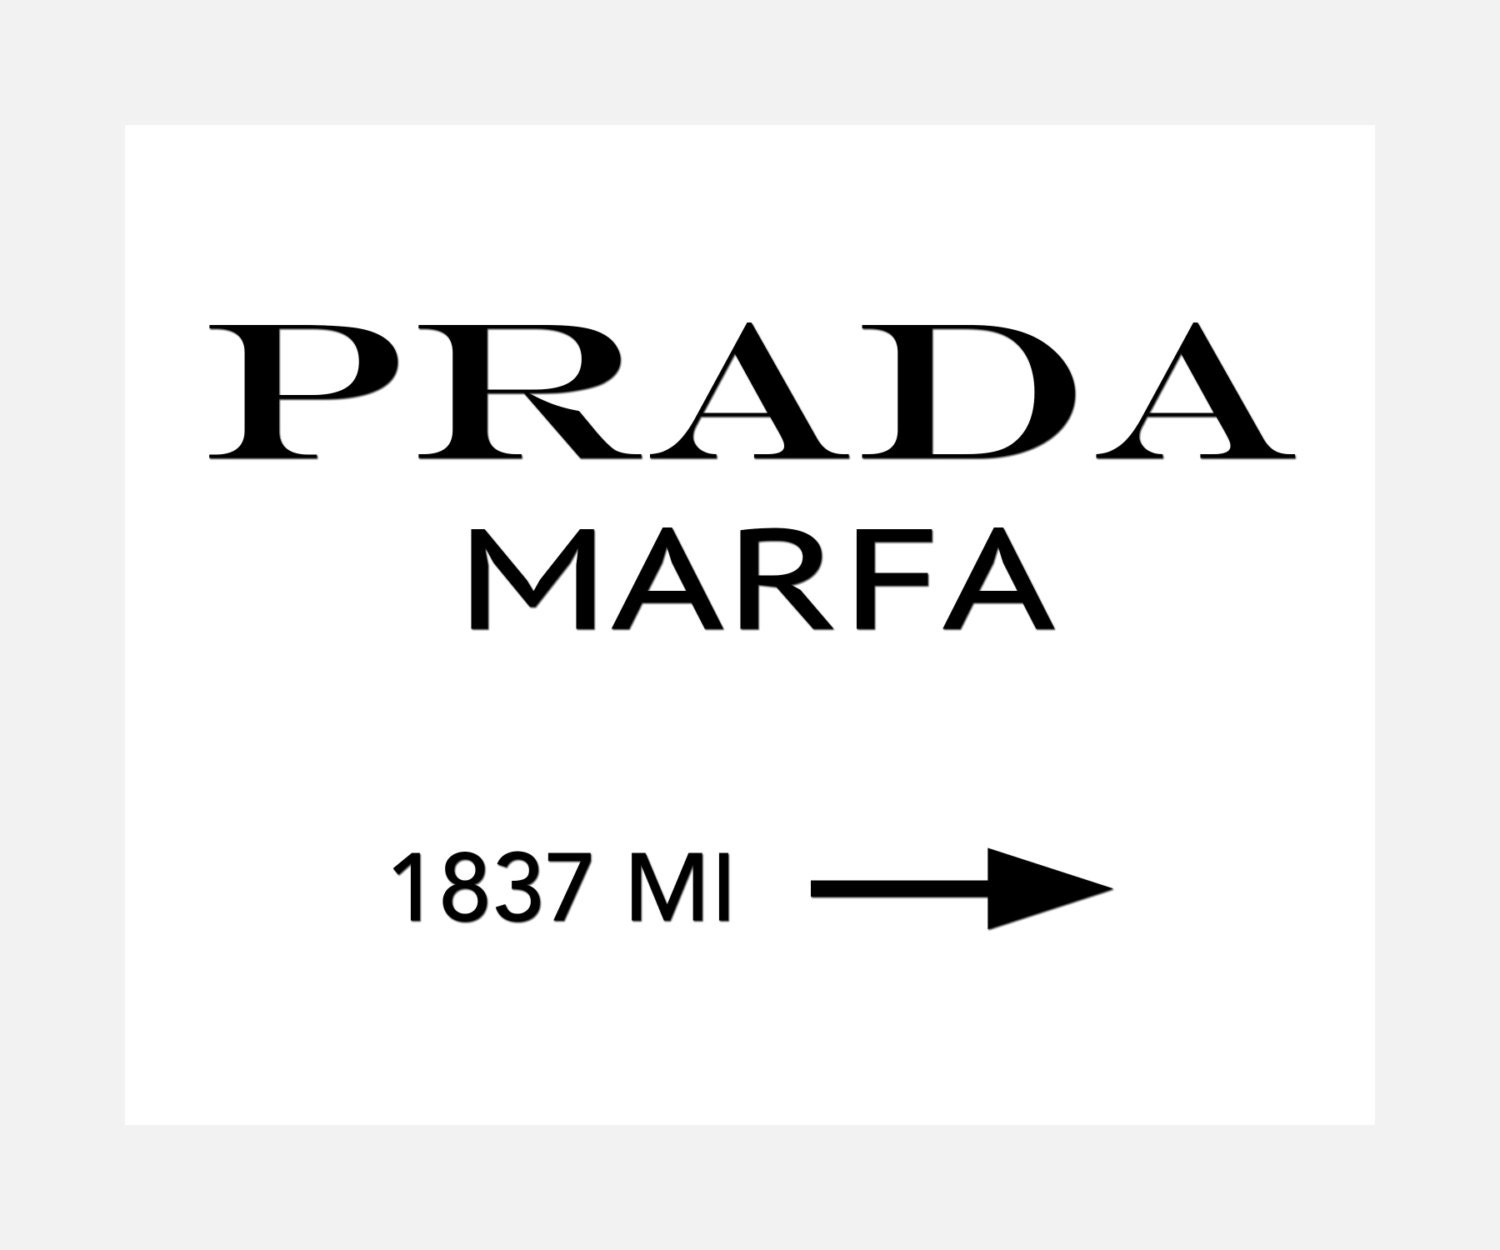 prada marfa ready to hang canvas wrap or luster paper. Black Bedroom Furniture Sets. Home Design Ideas